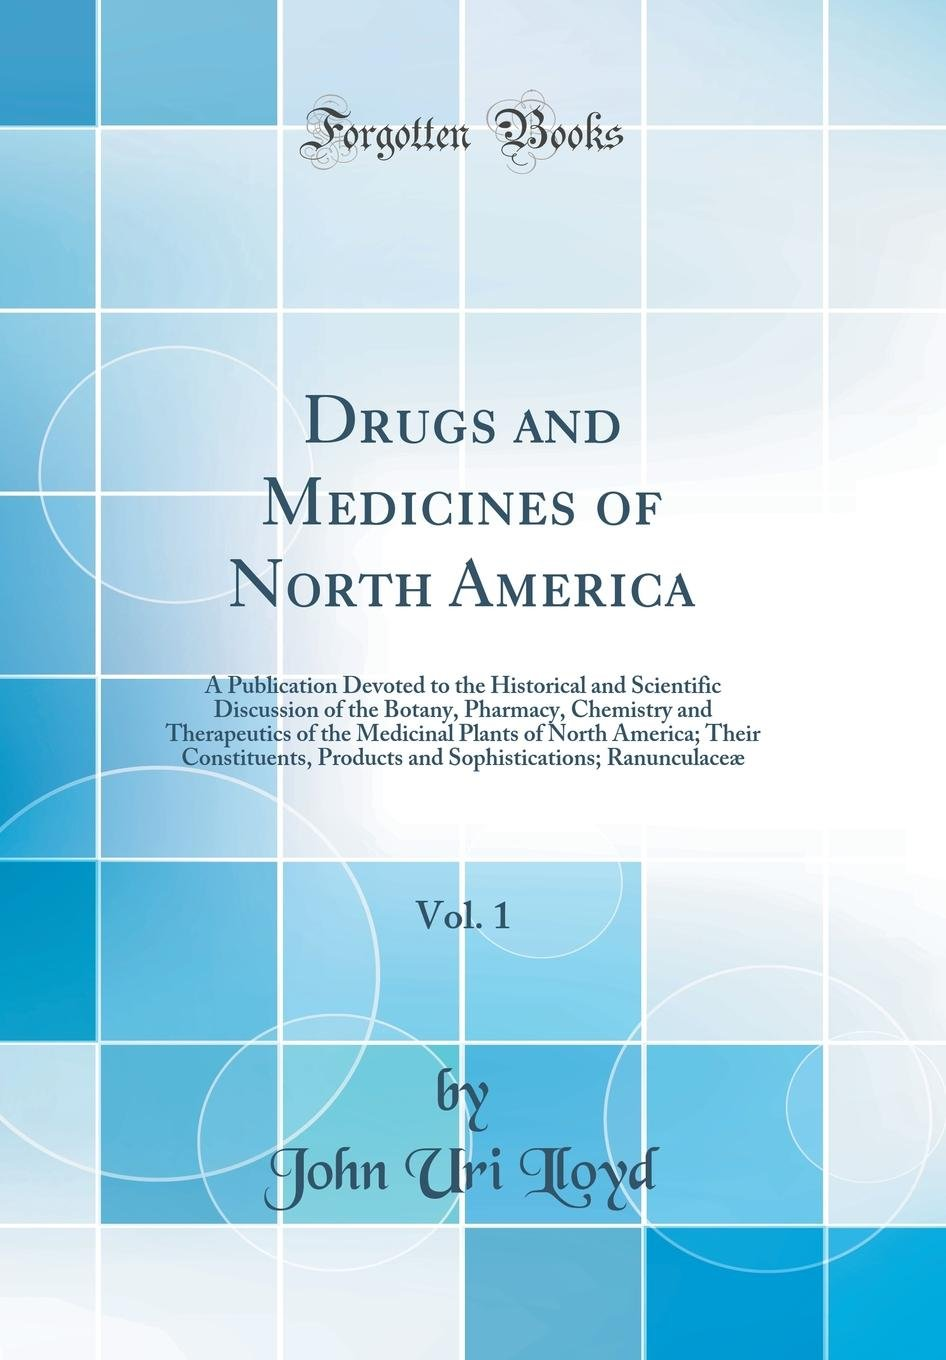 Drugs and Medicines of North America, Vol. 1: A Publication Devoted to the Historical and Scientific Discussion of the Botany, Pharmacy, Chemistry and ... Constituents, Products and Sophistications; pdf epub